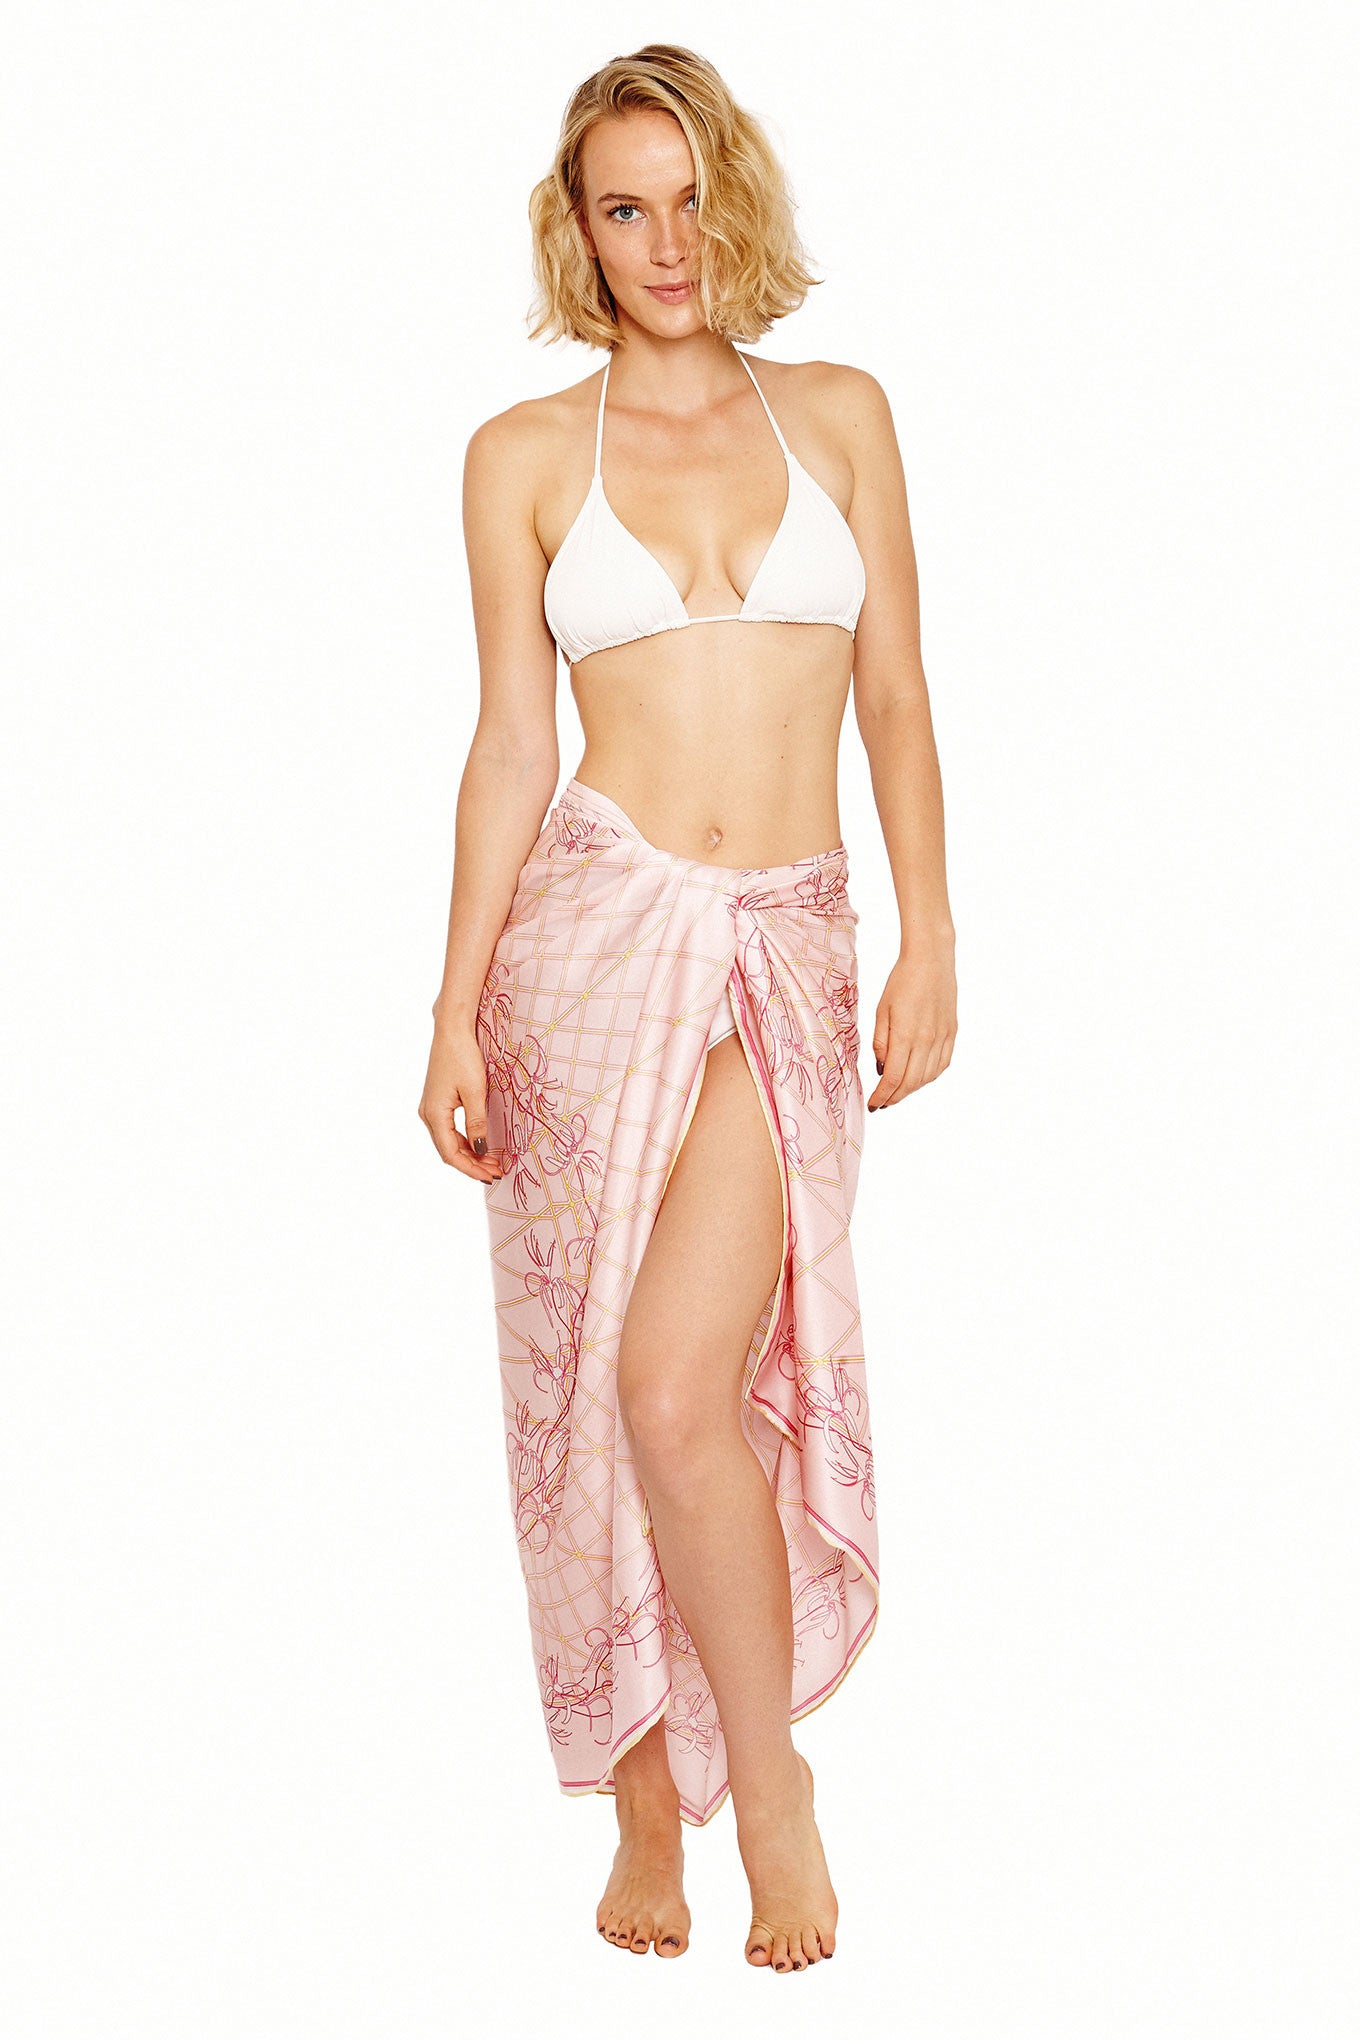 Lotty B Sarong in Silk Charmeuse (Spiderlily Peach Pink) Tied at Hips